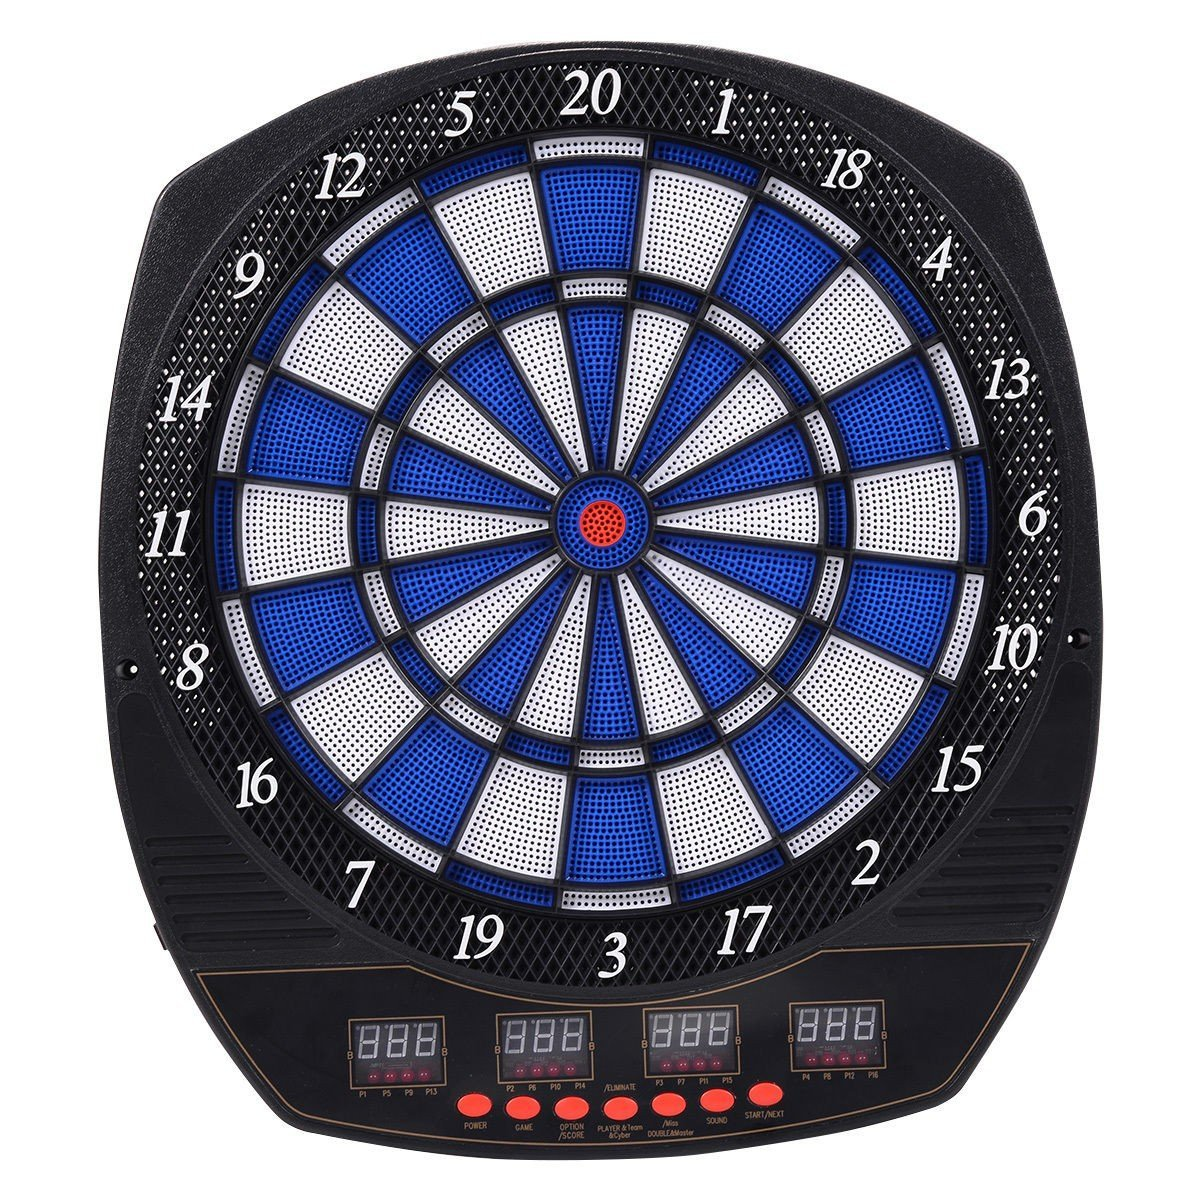 MD Group Electronic Dart Board Set ABS Arachnid LCD Display with 6 Darts Multi-player Games